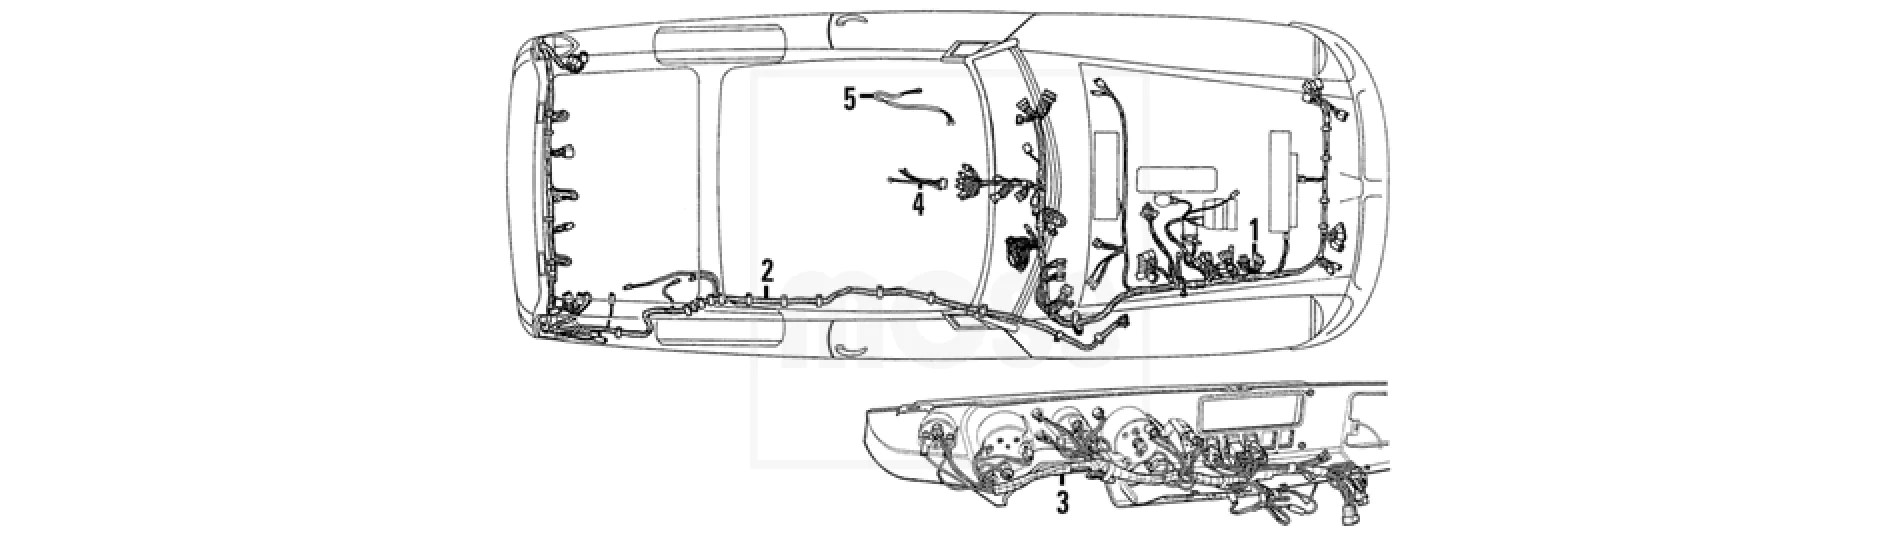 medium resolution of mgb gt wiring harness wiring diagram datasource 1972 mgb wiring harness